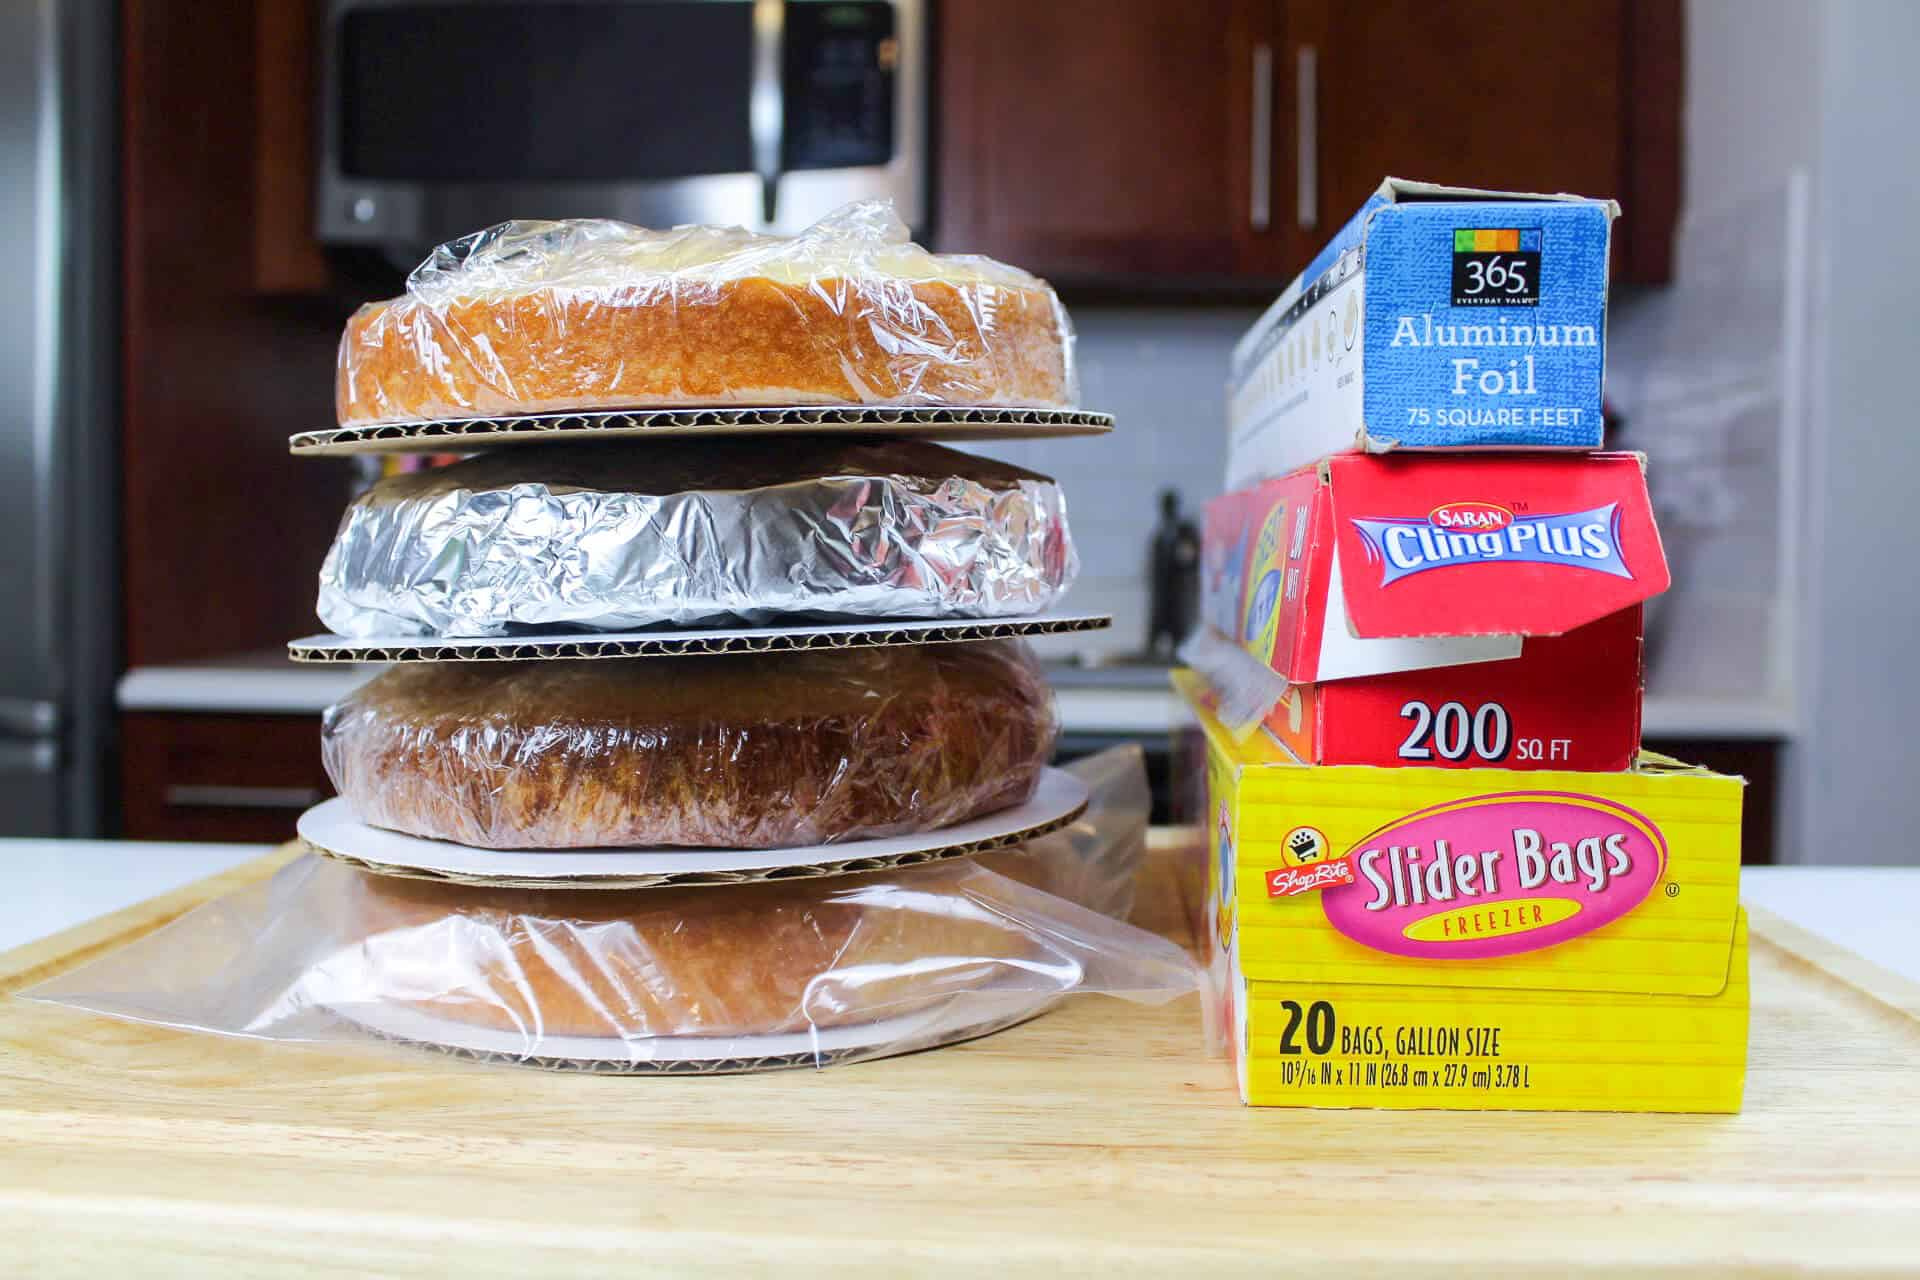 Image of cake layers made in advance and frozen